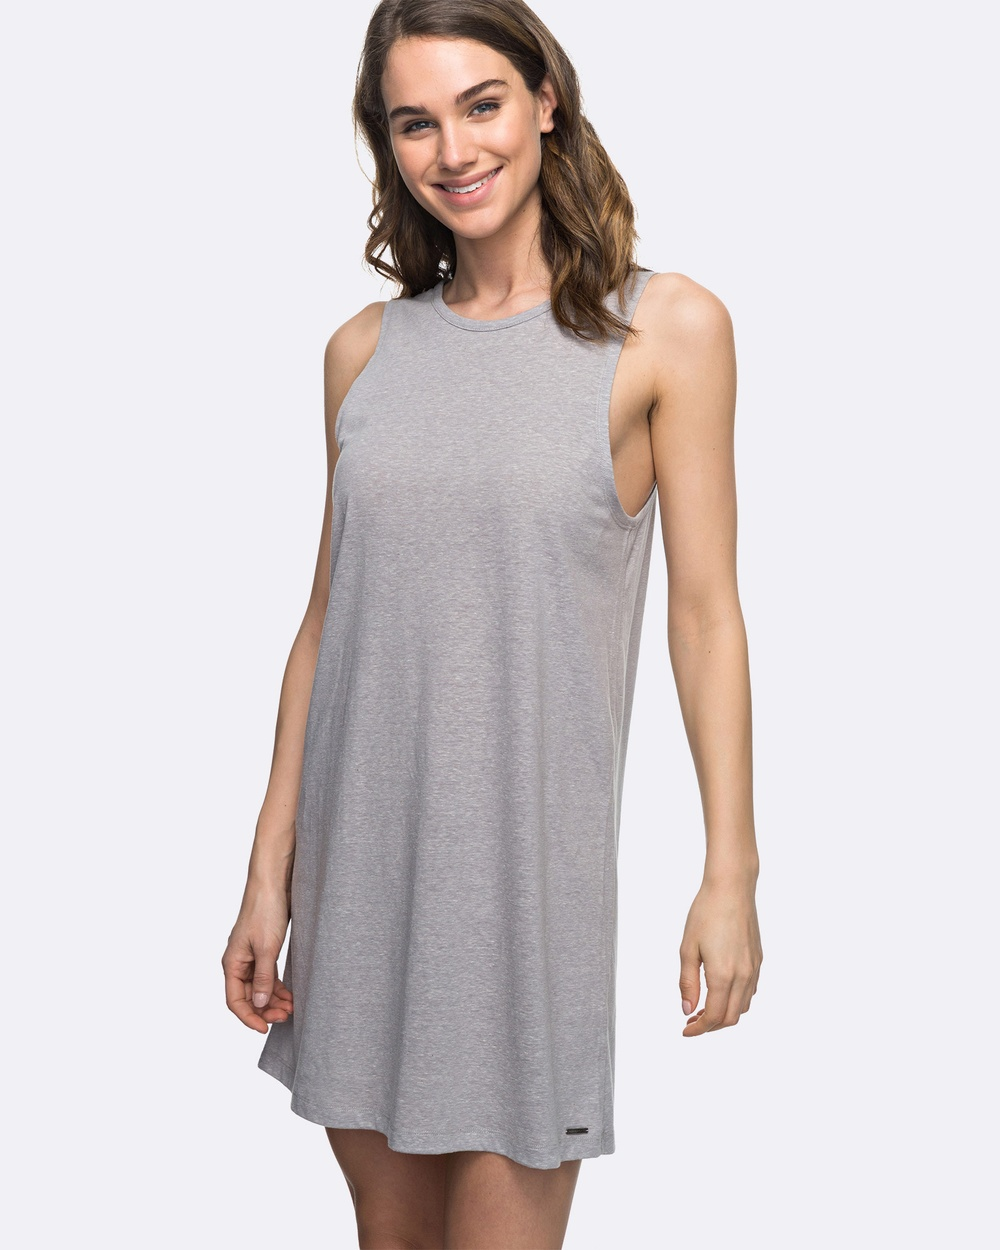 Roxy Womens Just Simple Solid Tank Dress Swimwear Heritage Heather Womens Just Simple Solid Tank Dress